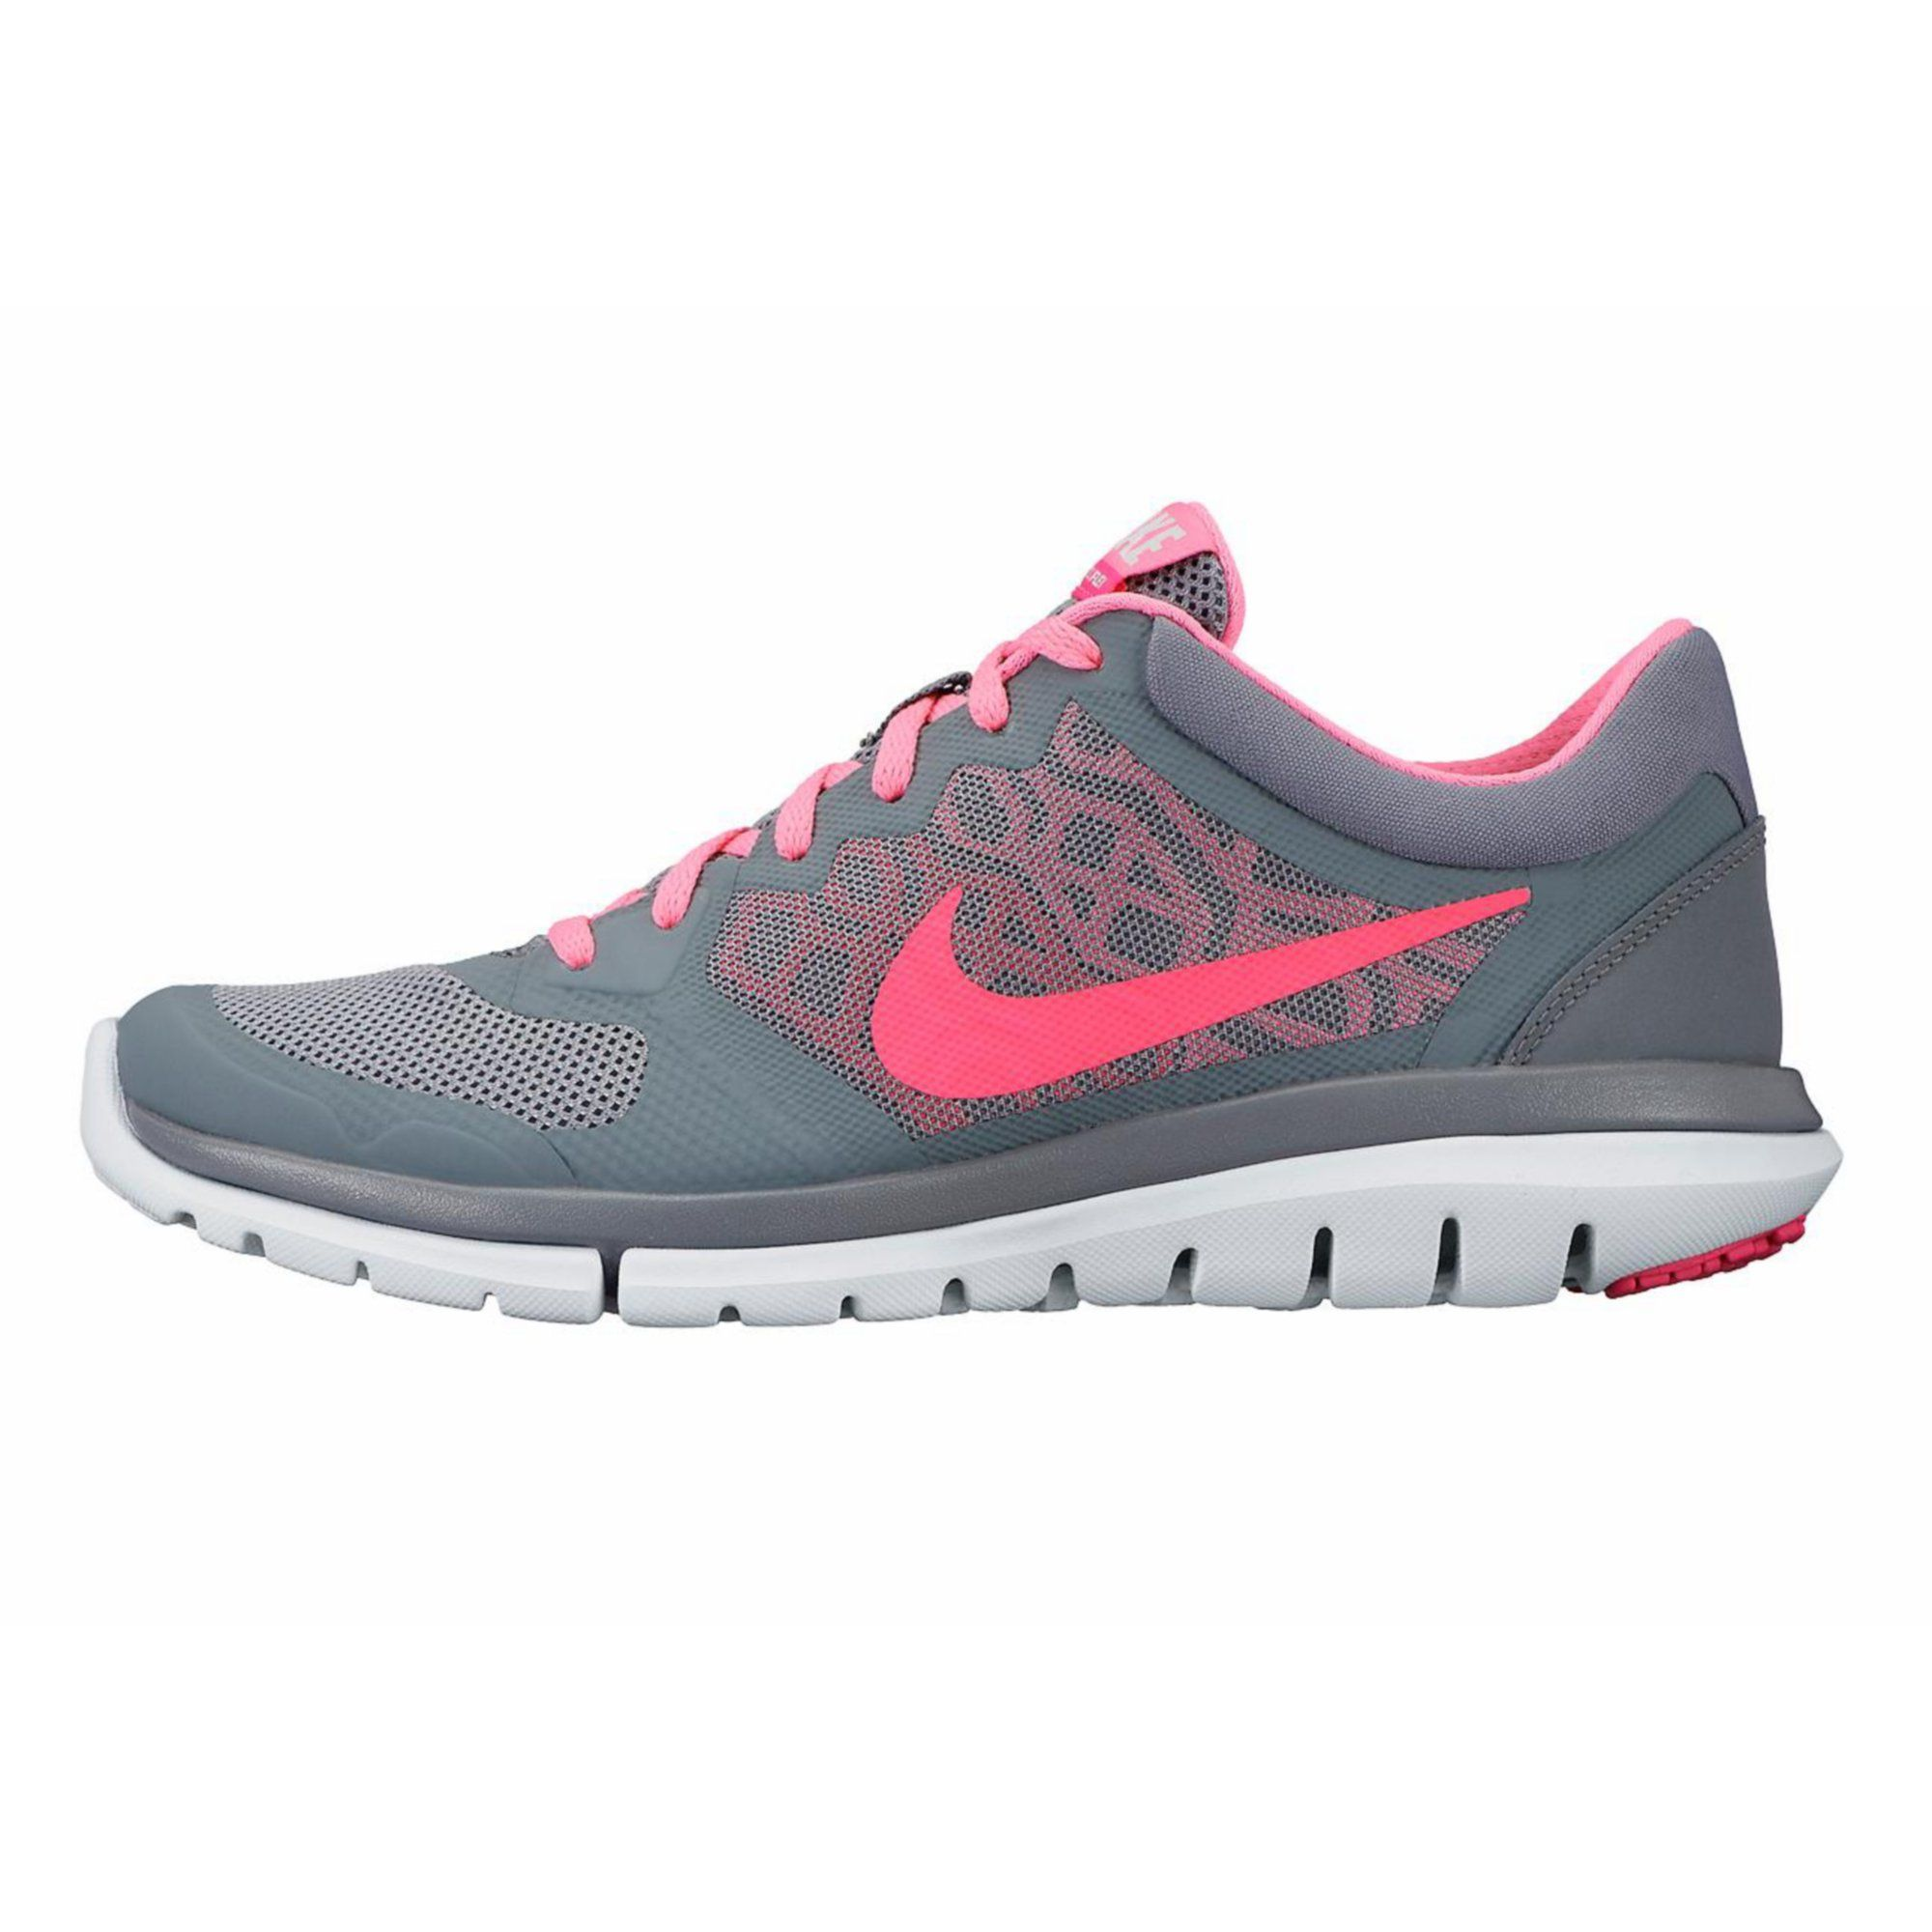 sports shoes 0e8bd 5814e Nike Flex 2015 RN chaussure de running femme - 3Suisses